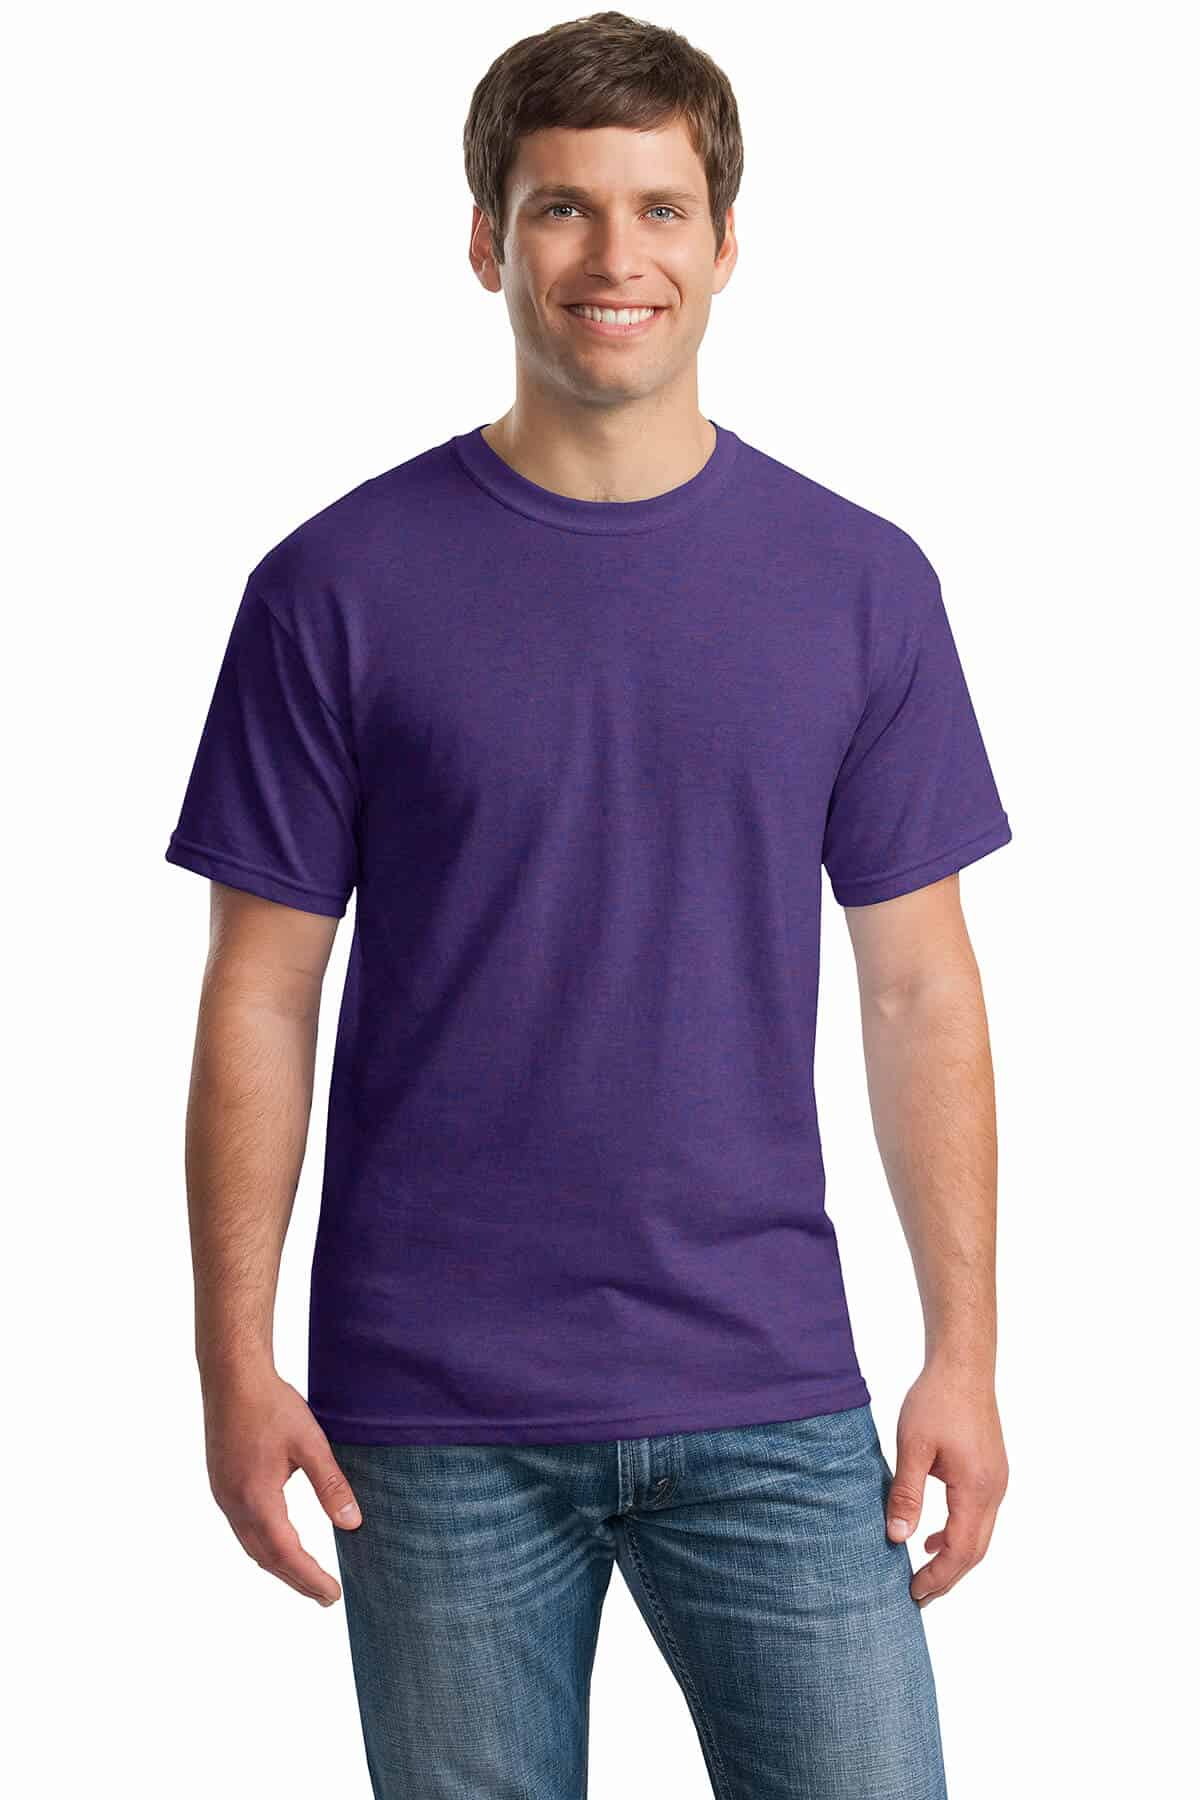 Lilac Tee Front